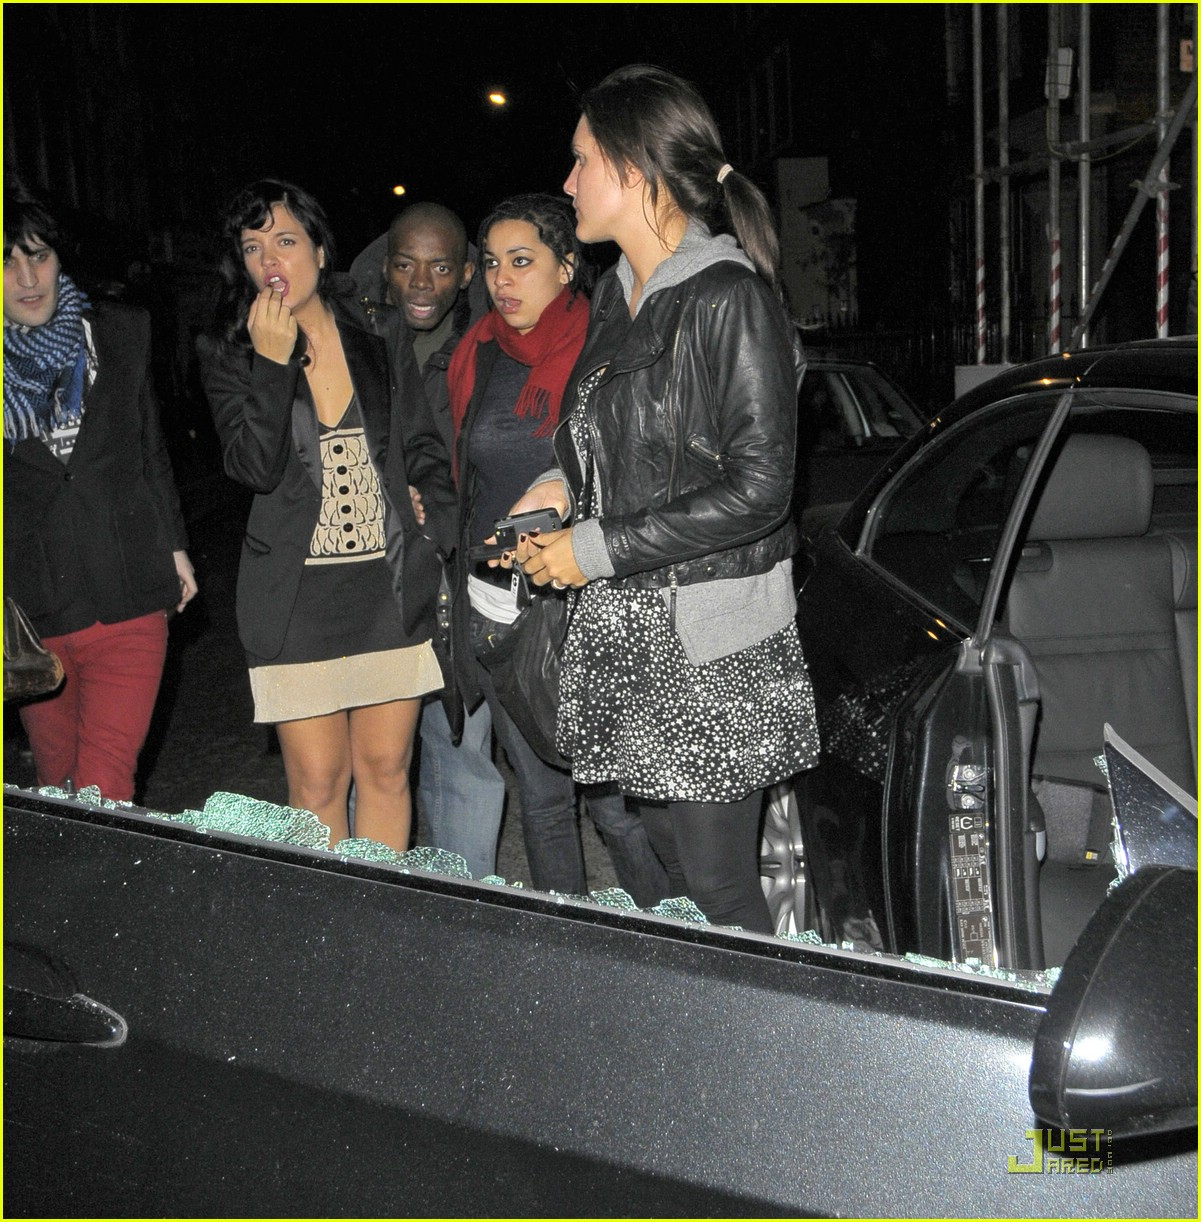 paparazzi break lily allen car window 02